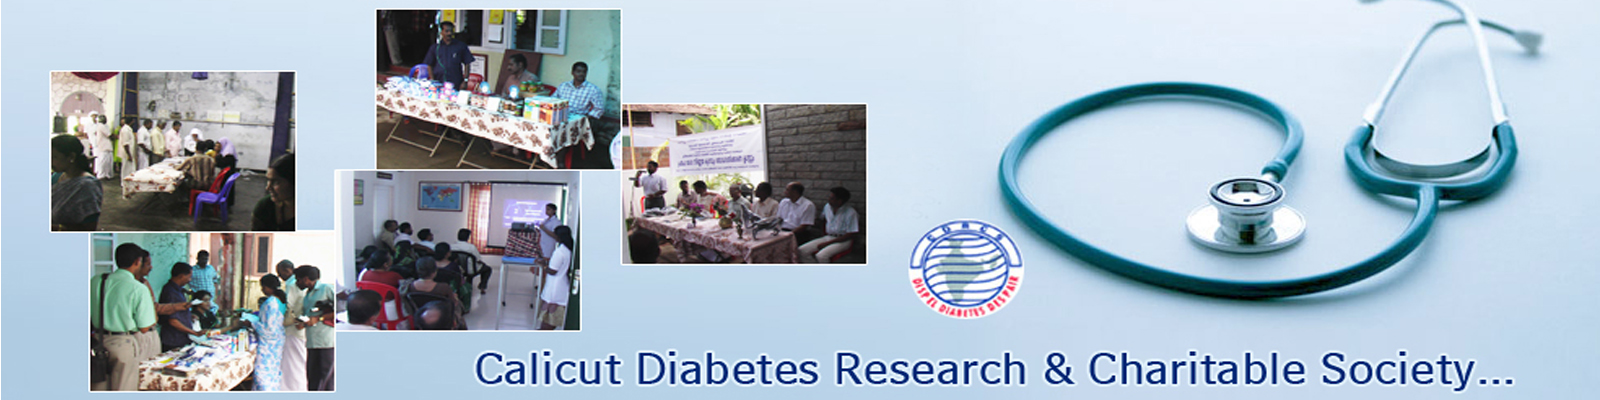 Calicut Diabetes Research and Charitable Society